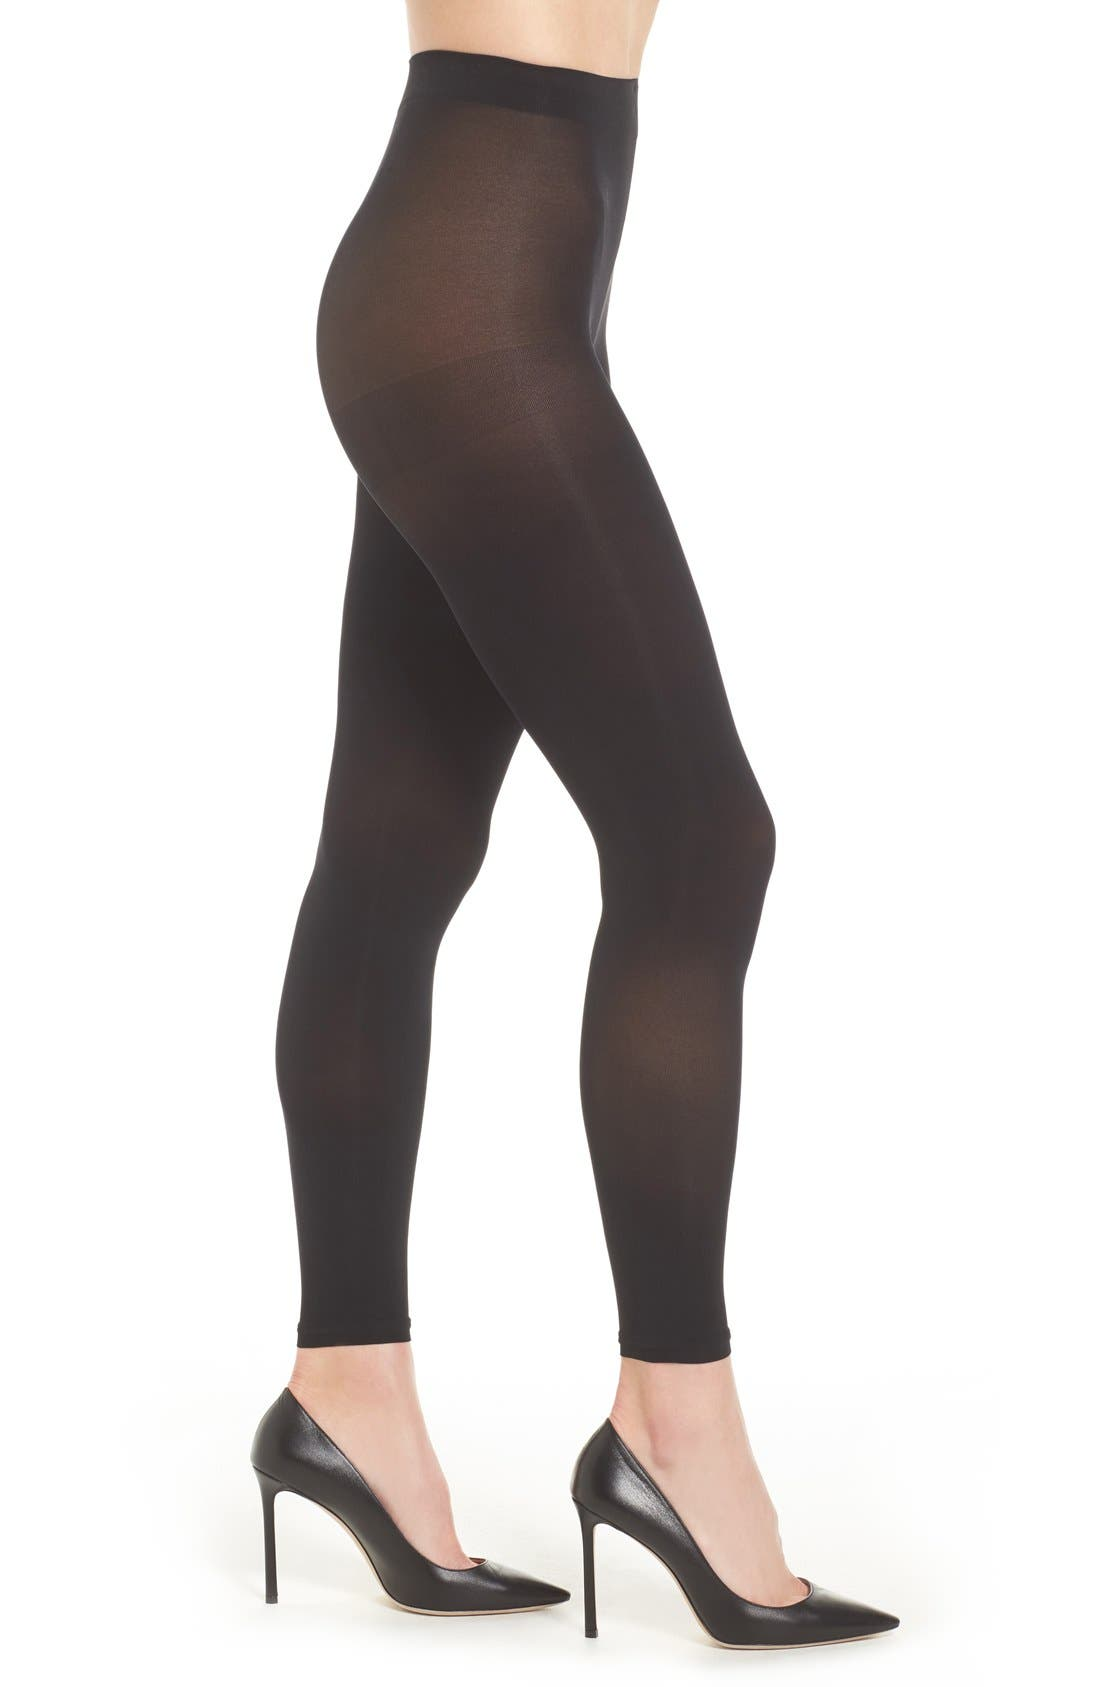 Main Image - Nordstrom 'Everyday' Footless Tights (2 for $24)